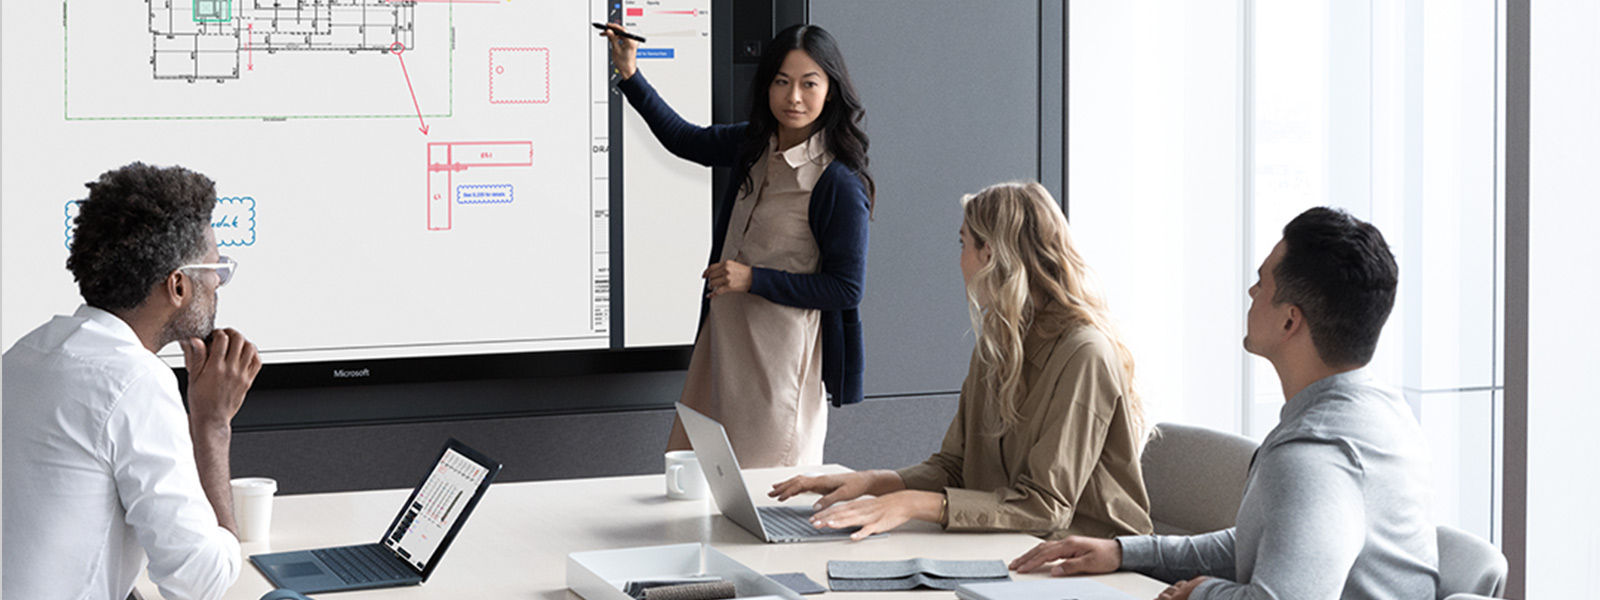 Co-workers sit at a conference table, while one woman uses Surface Pen on a Surface Hub, and a man uses a Cobalt Surface Laptop in laptop mode, and another woman uses Surface Book 2 in laptop mode.